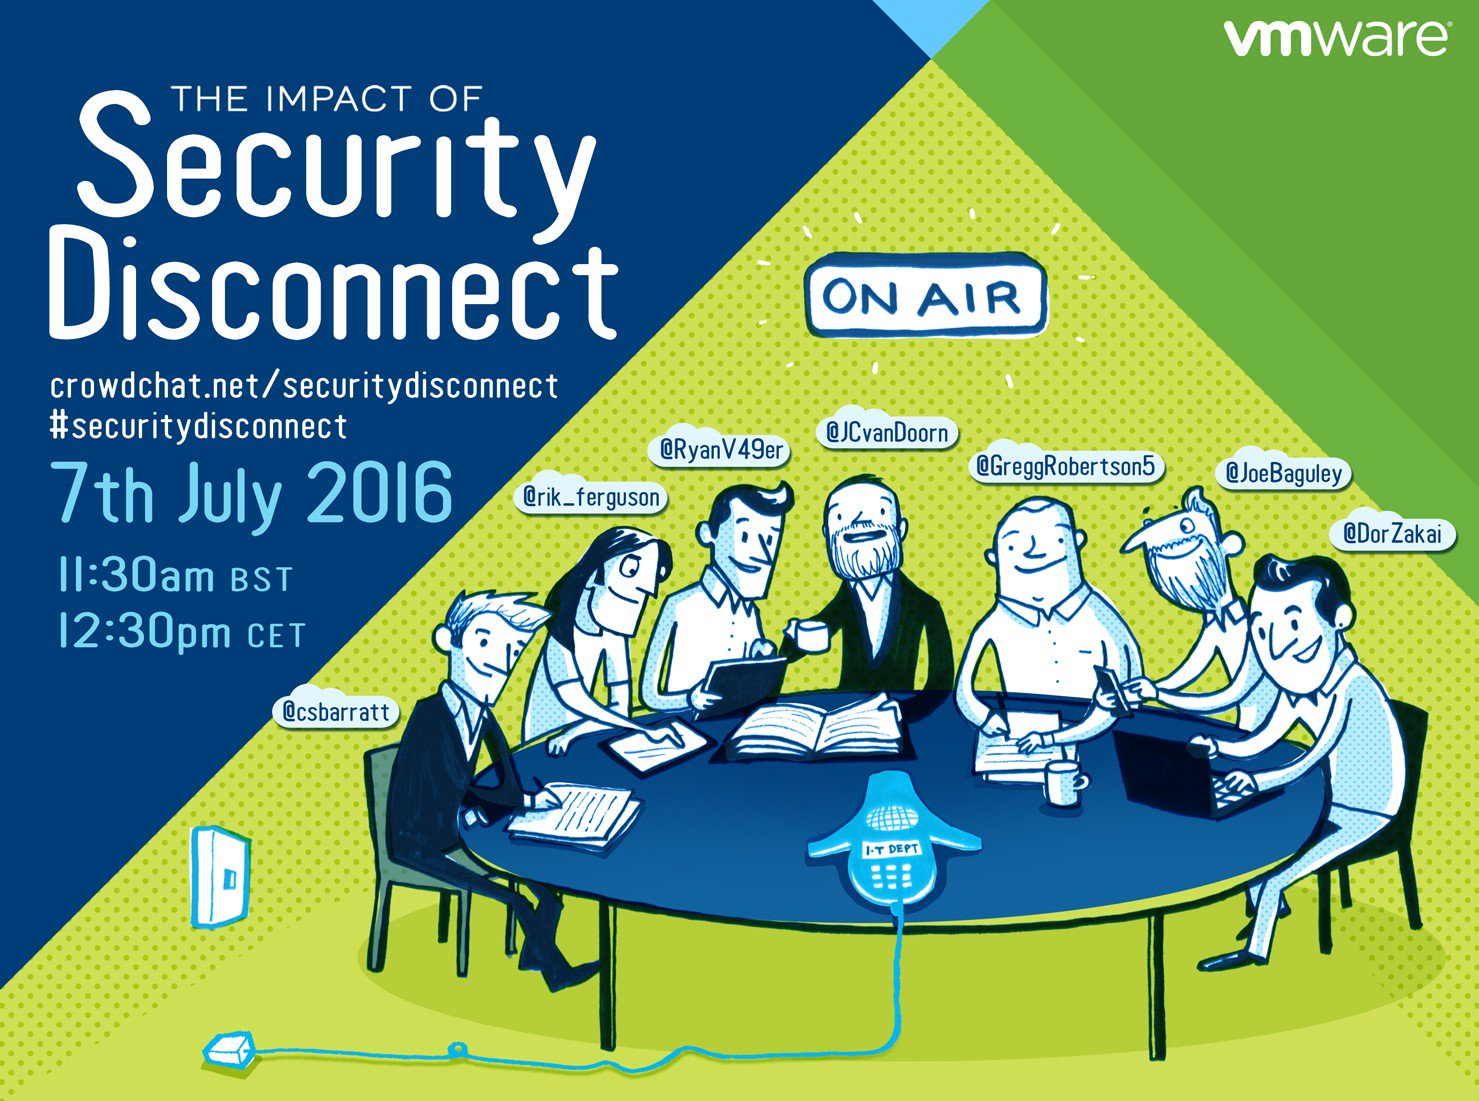 1 hour to go until our #SecurityDisconnect CrowdChat - don't miss out! https://t.co/pHBm0xIJLn https://t.co/97L9VhdW85